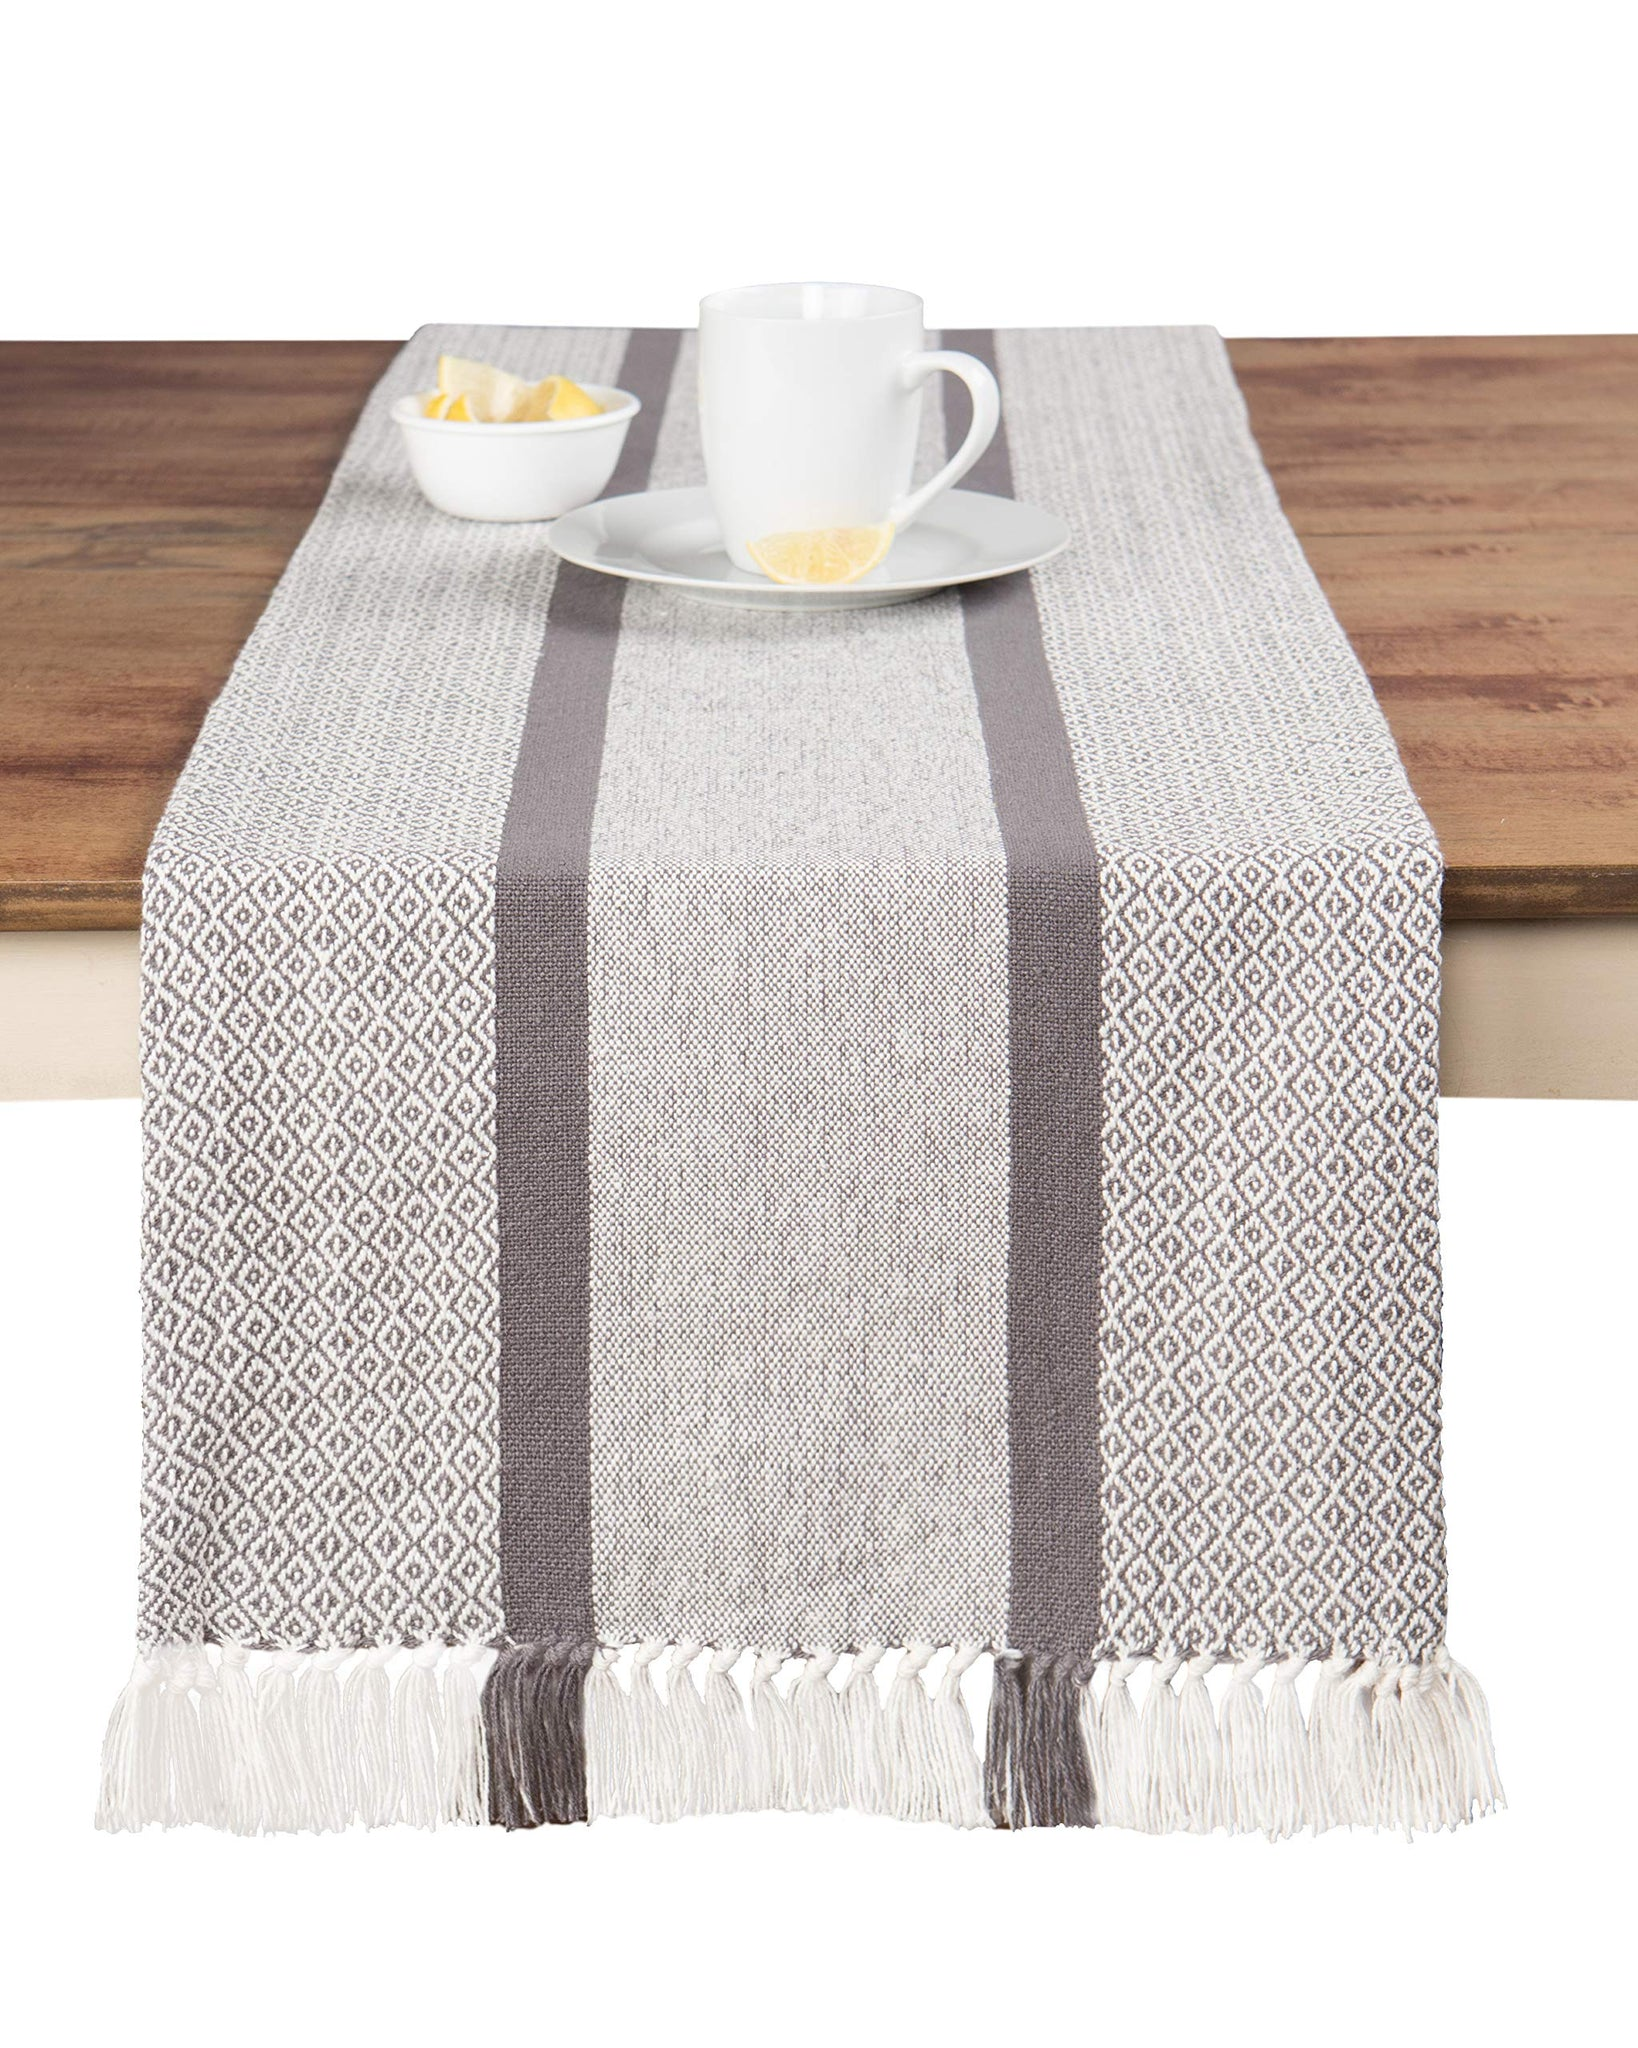 FanBell Cotton Woven Table Runner with Fringe, Traditional Diamond, Gray, 14 in x 72 in